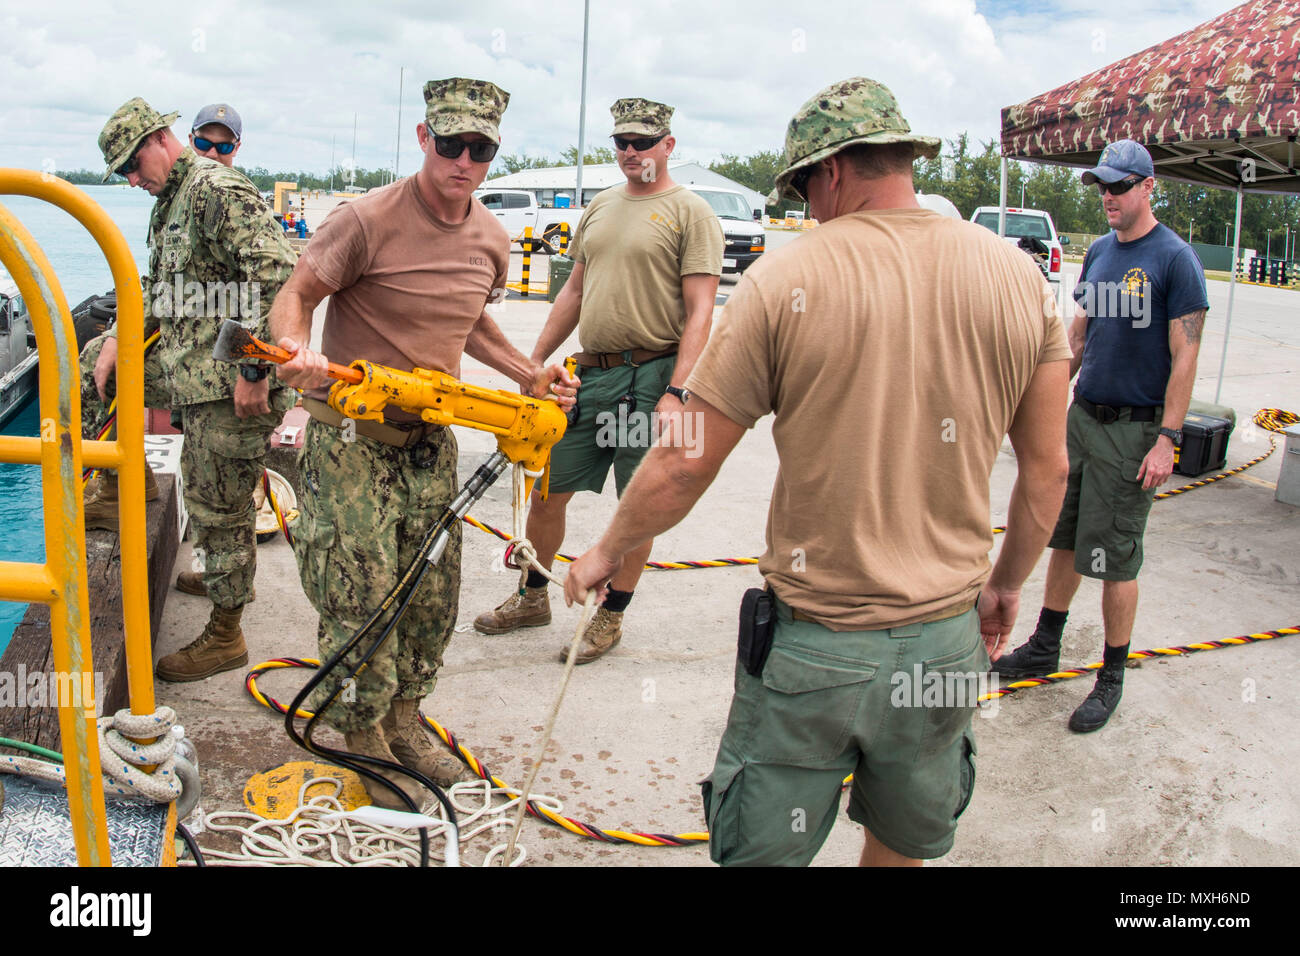 Chief Petty Officer Jesse Hamblin, center, assigned to Underwater Construction Team (UCT) 2's Construction Dive Detachment Bravo, moves a hydraulic tool in Diego Garcia, Nov. 4, 2016. CDDB is performing precision underwater demolition and light salvage to remove obstructions from Diego Garcia's deep draft wharf. CDDB is on the third stop of their deployment, where they are conducting inspection, maintenance, and repair of various underwater and waterfront facilities while under Commander, Task Force (CTF) 75, the primary expeditionary task force responsible for the planning and execution of co Stock Photo